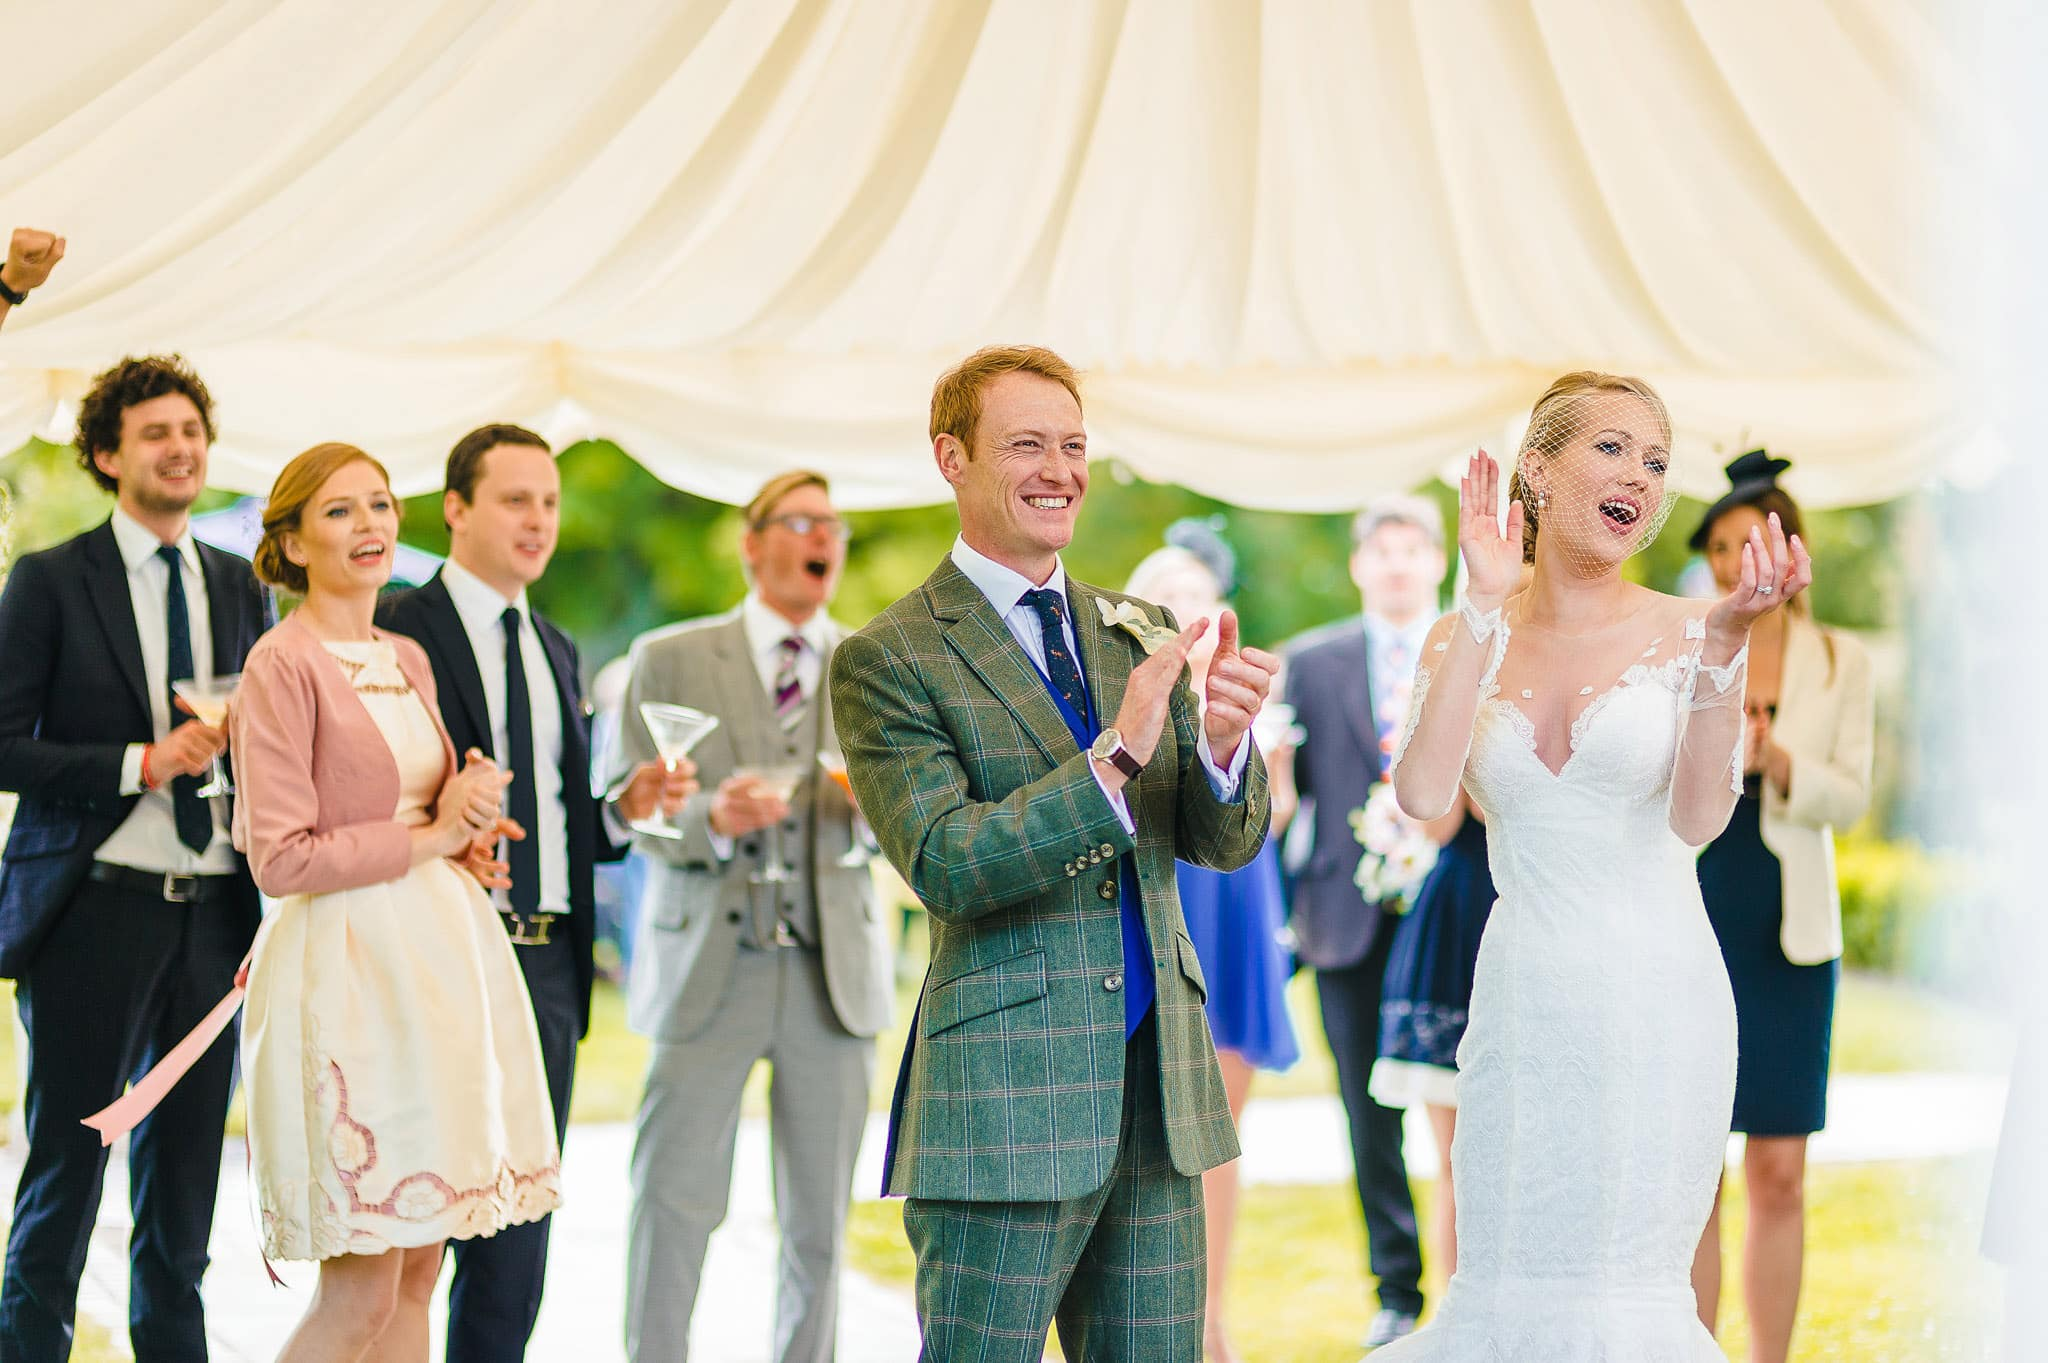 Lemore Manor Wedding Photographer | Hannah and Angus 39